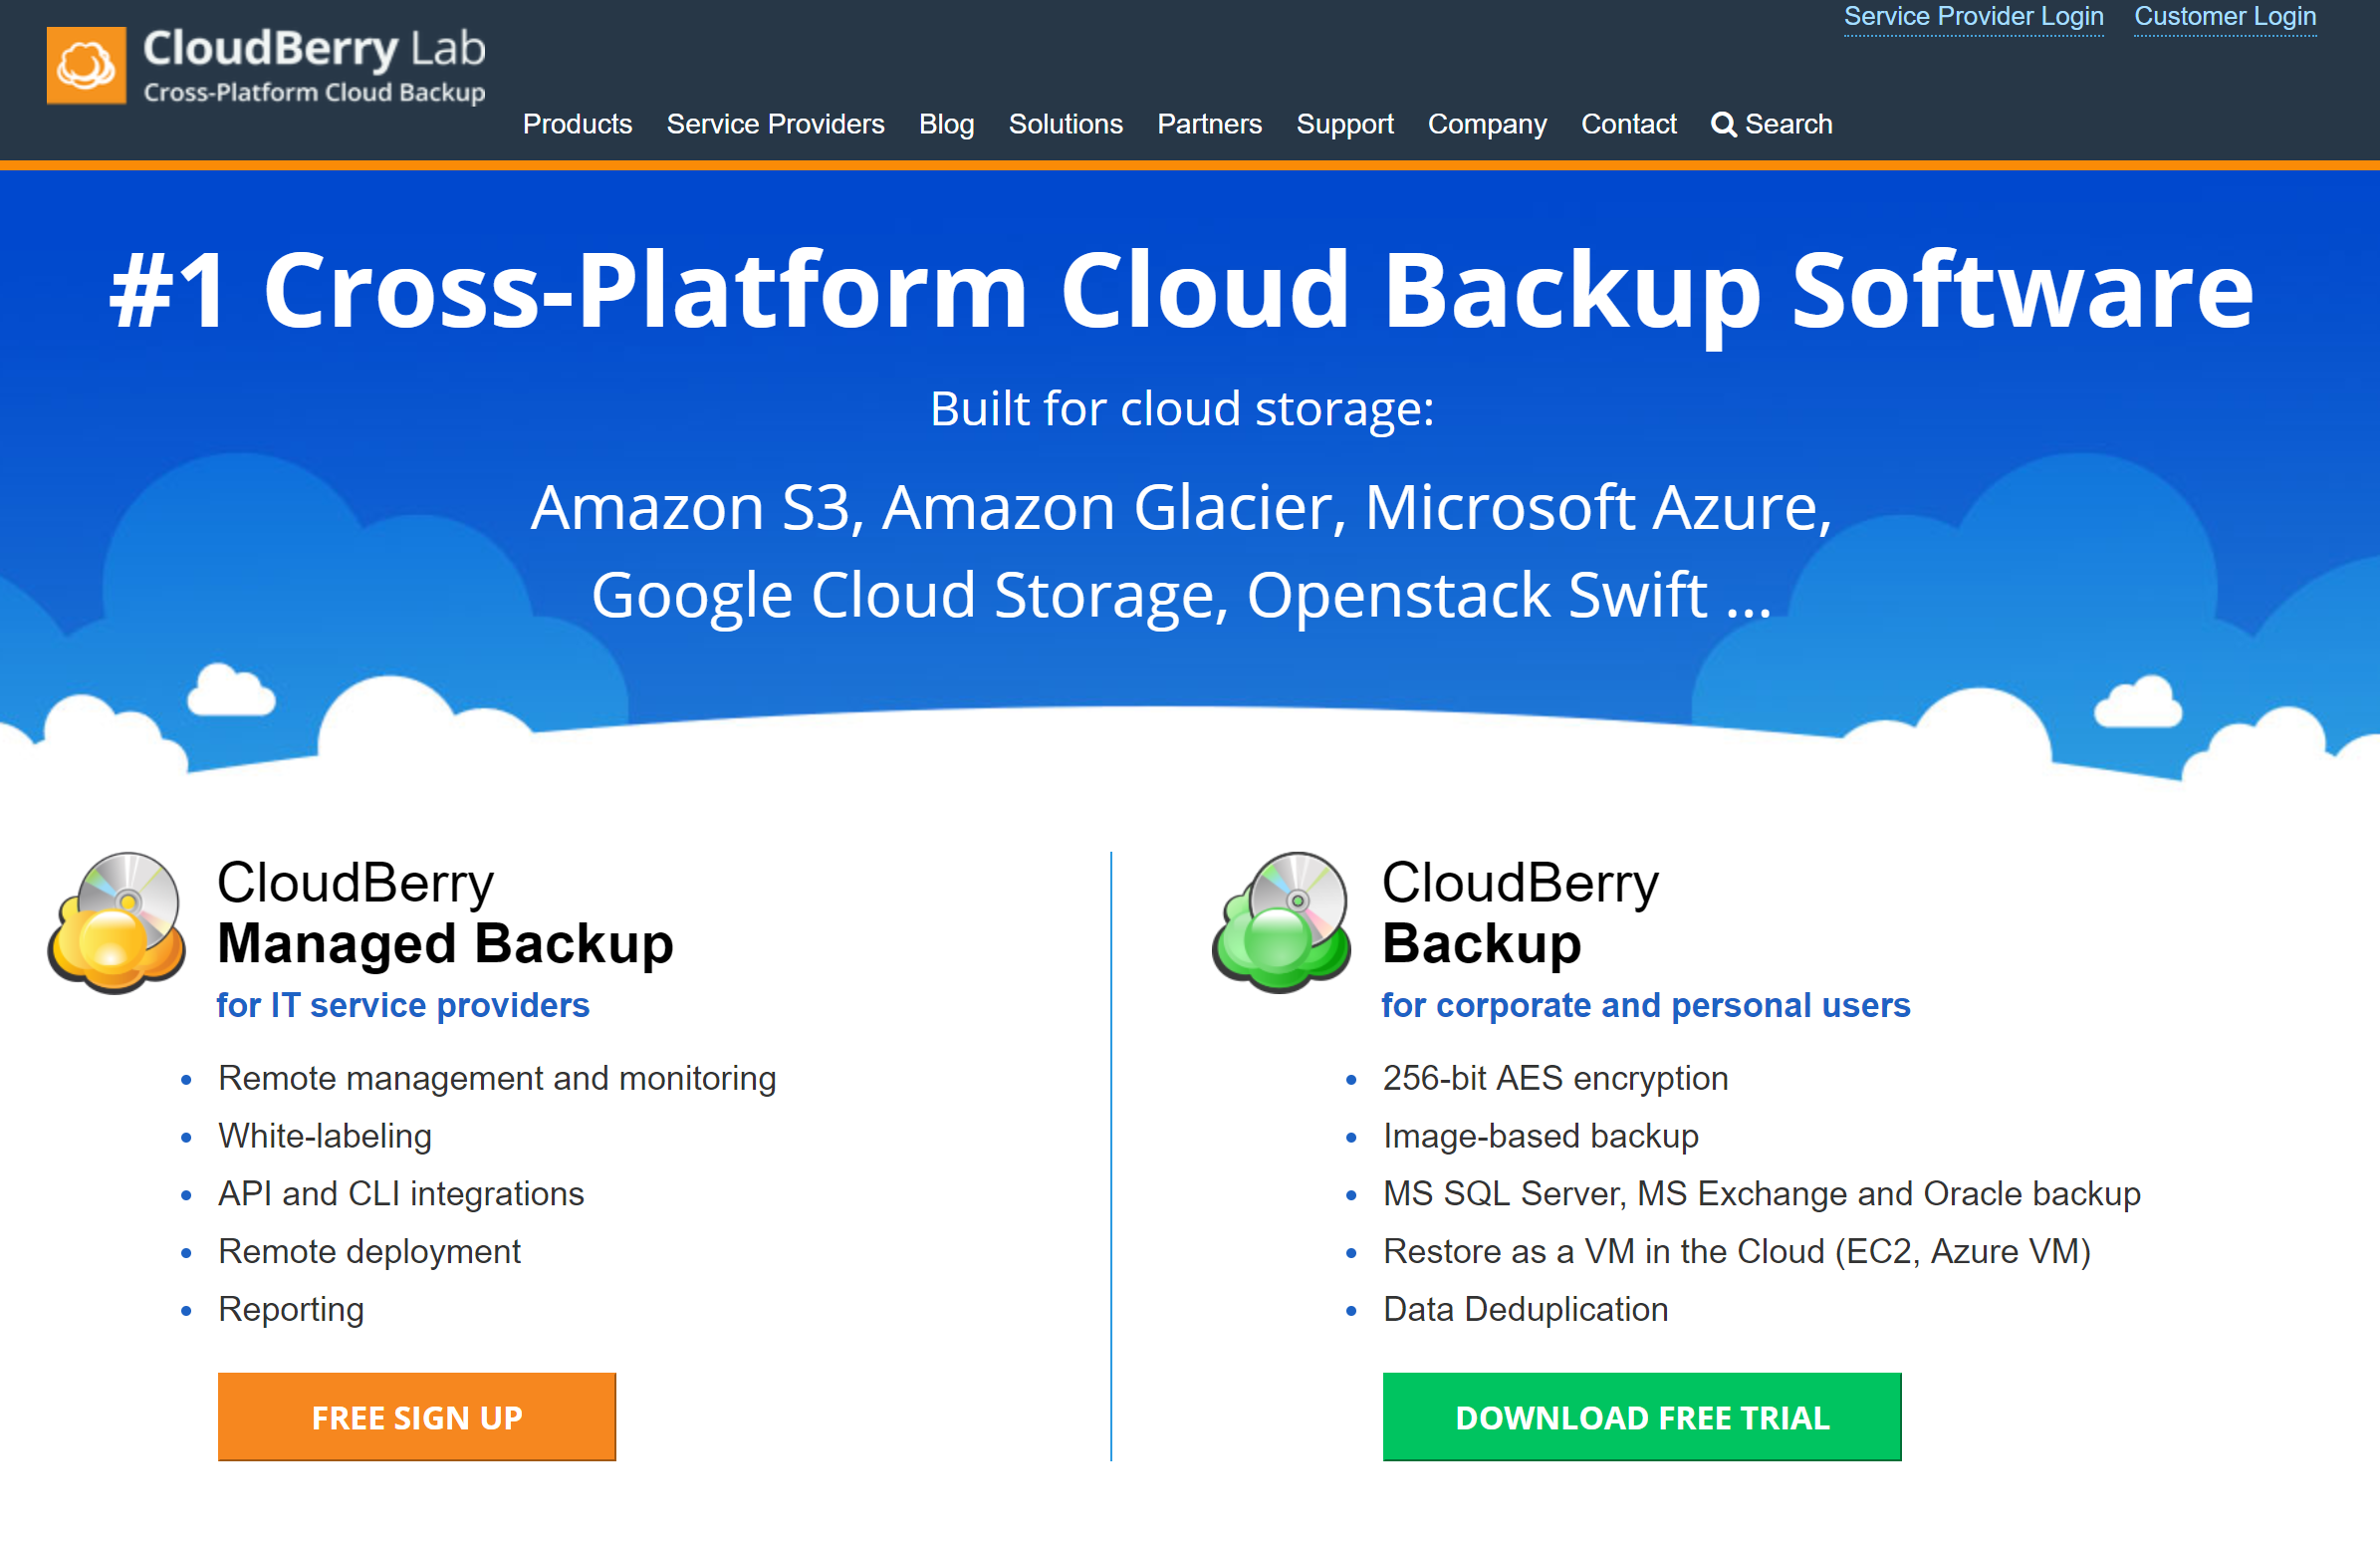 Cloudberry Cloud Backup Software